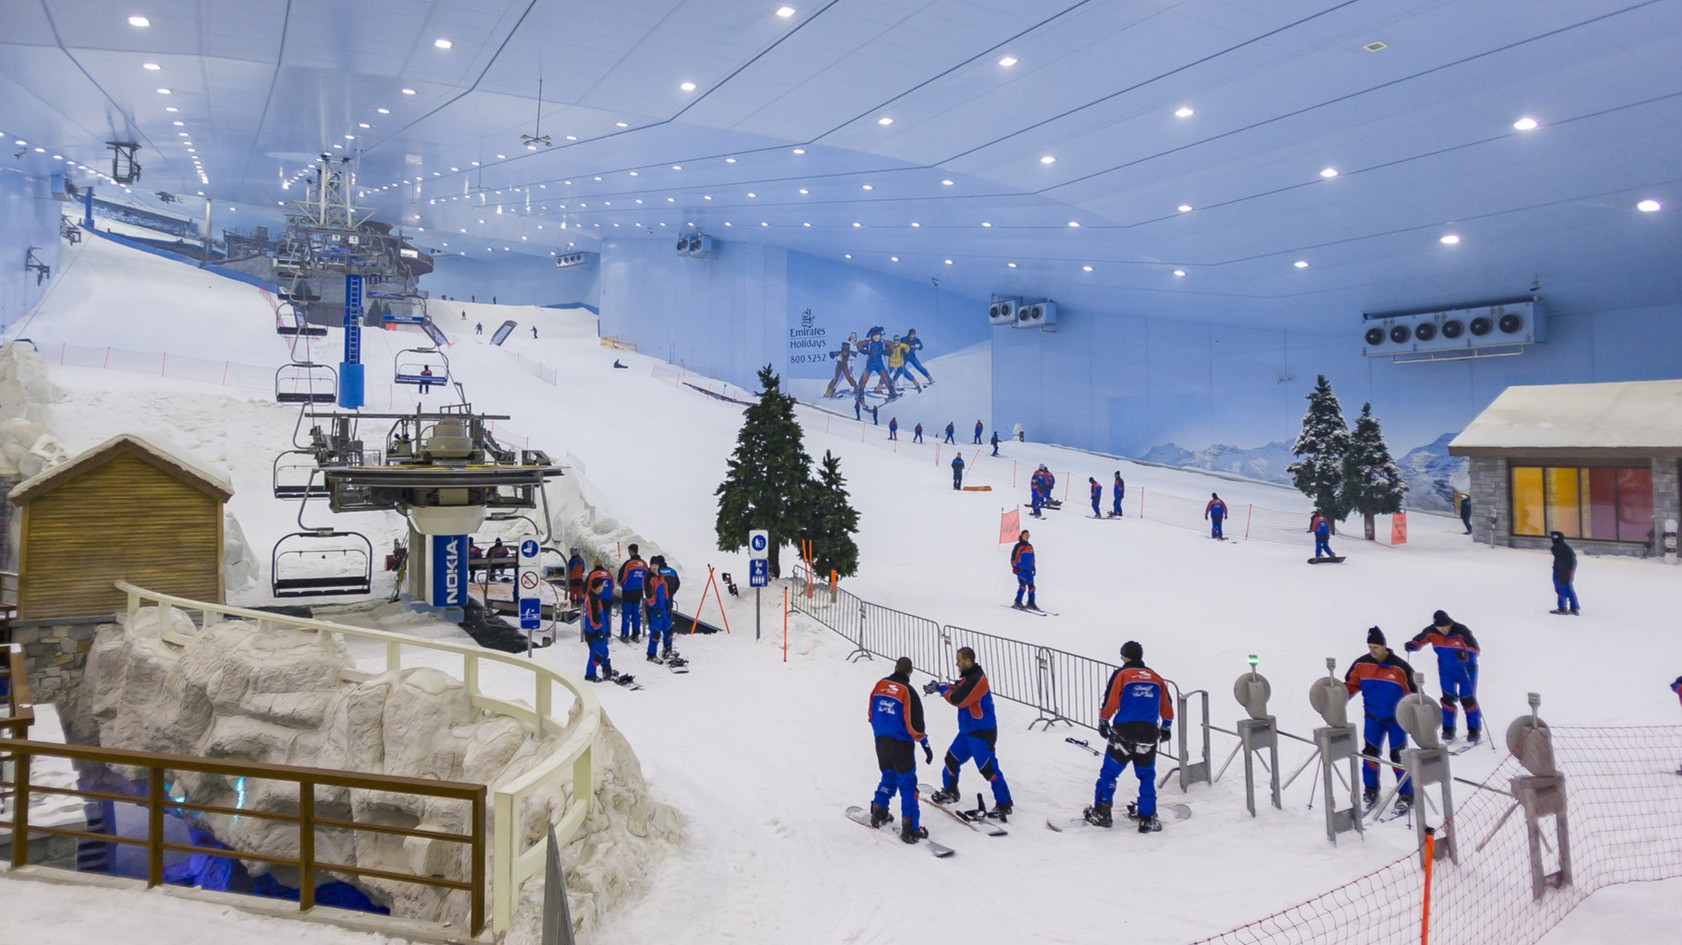 SKI DUBAI Mountain-themed attraction with snow